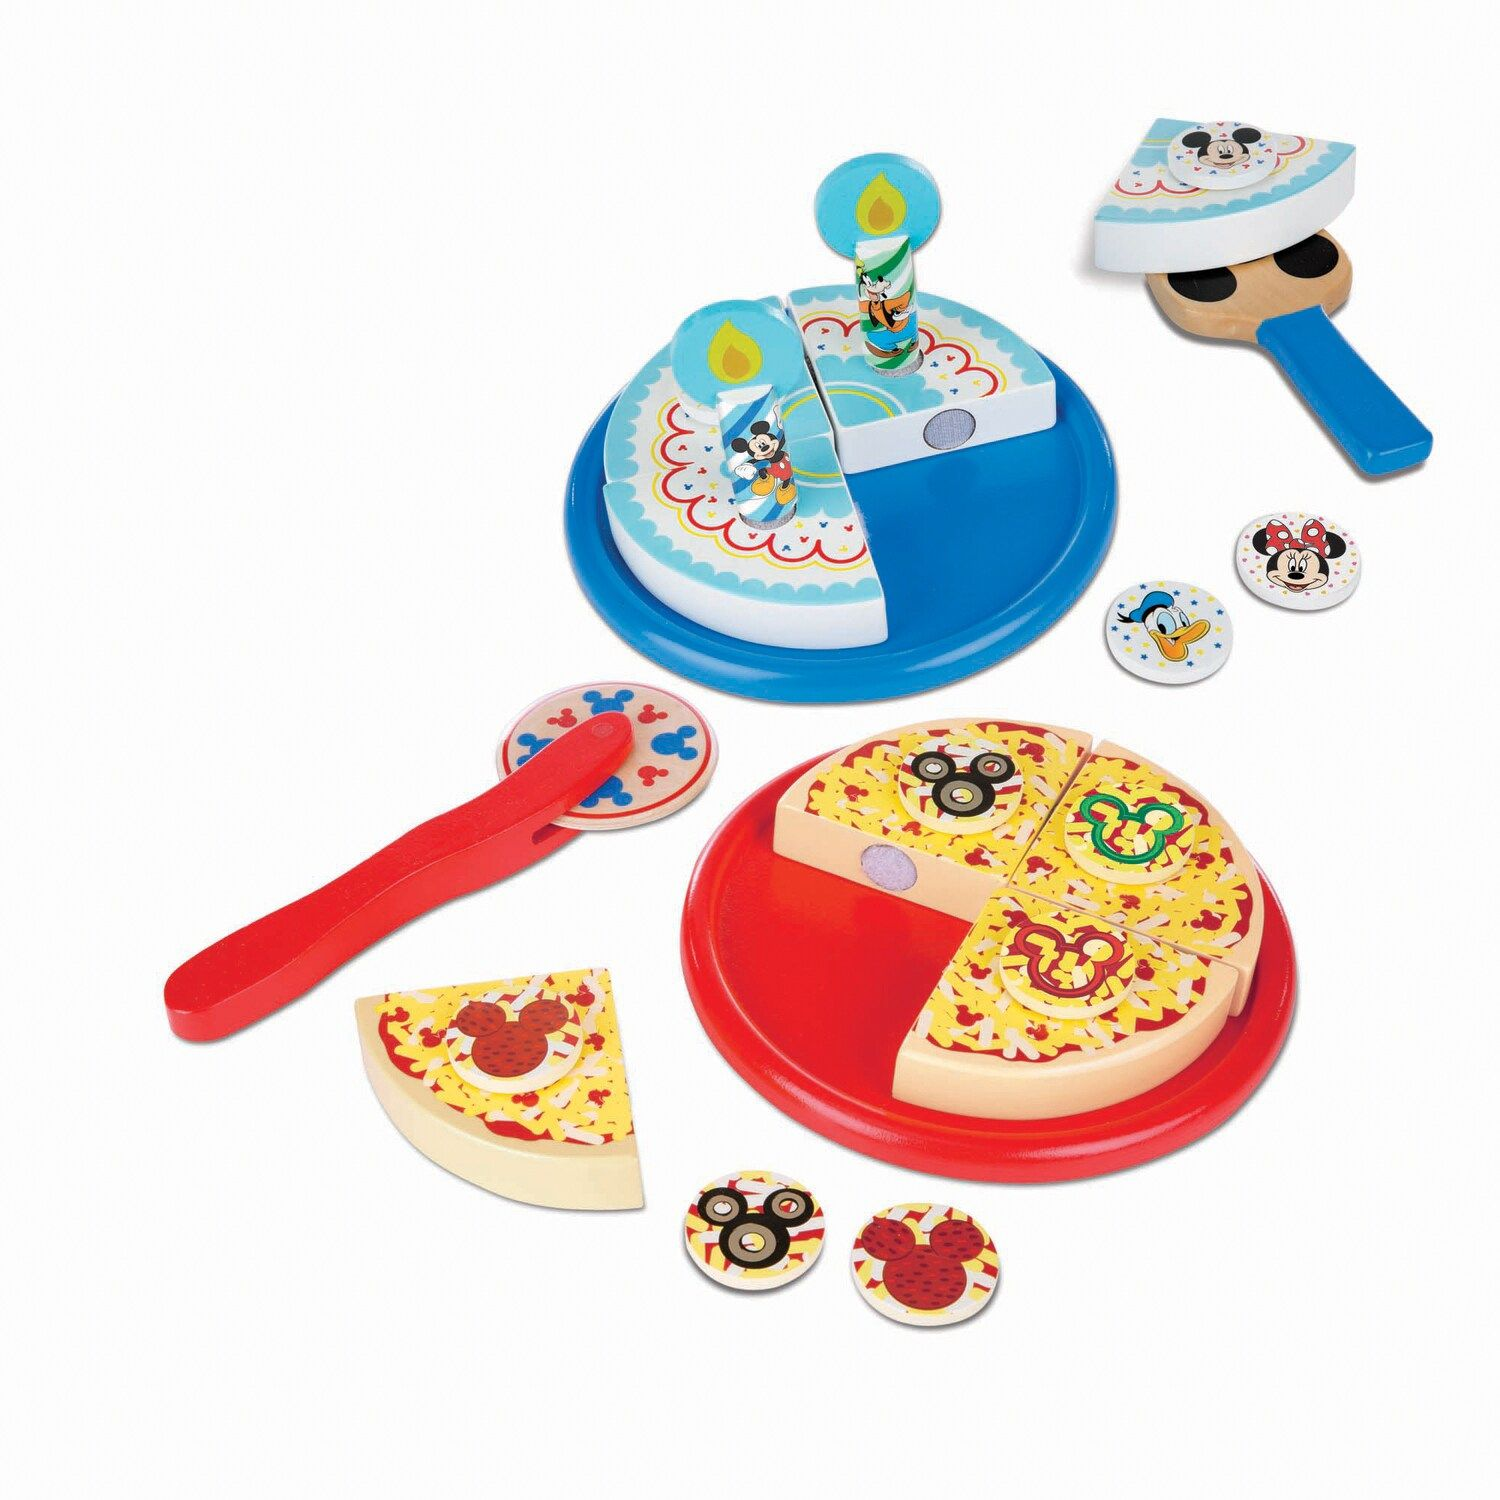 Disneys mickey mouse wooden pizza birthday cake set by